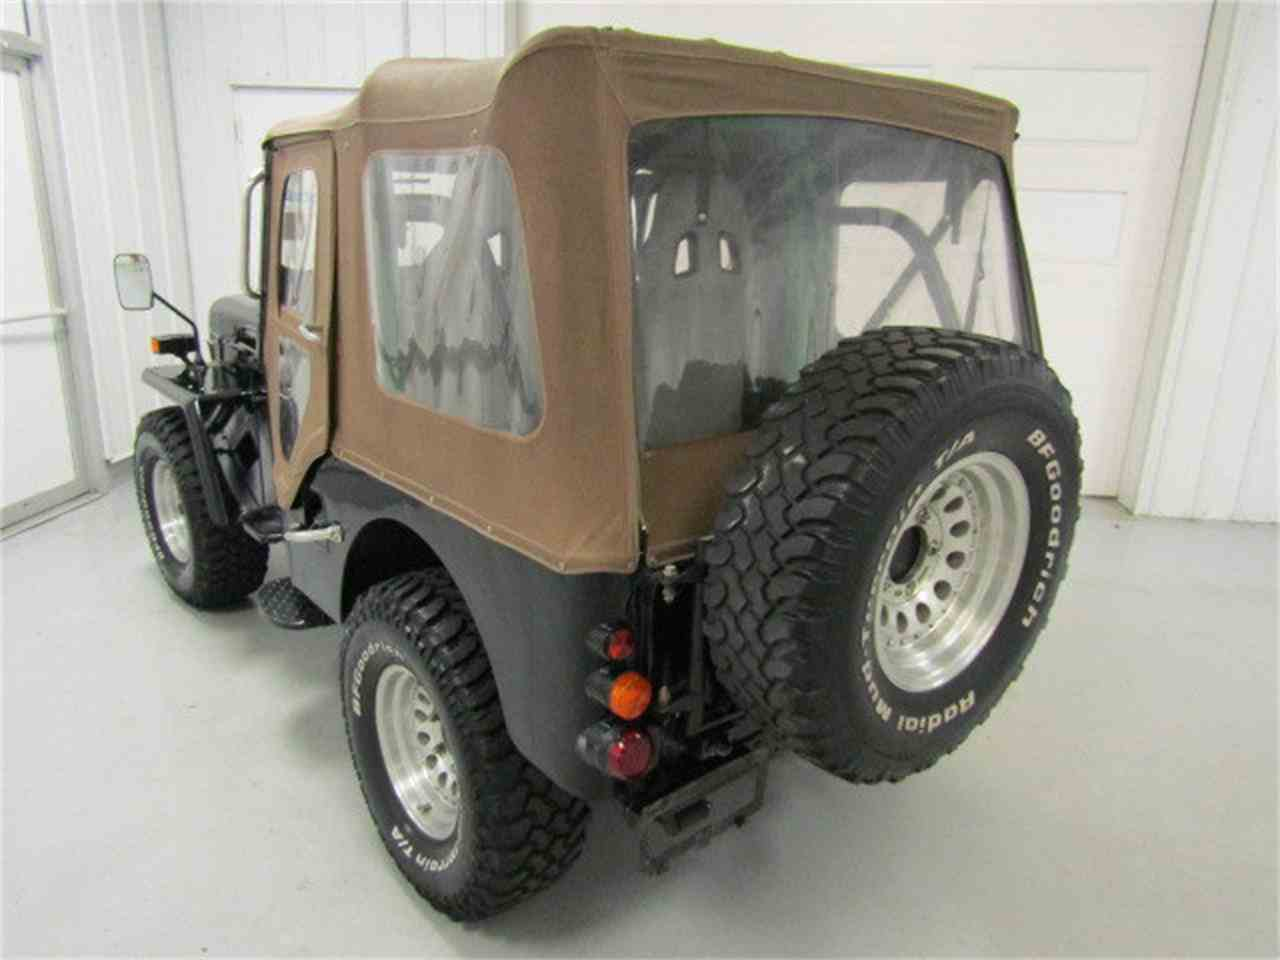 Large Picture of '83 Jeep located in Christiansburg Virginia - $9,999.00 Offered by Duncan Imports & Classic Cars - JM3F